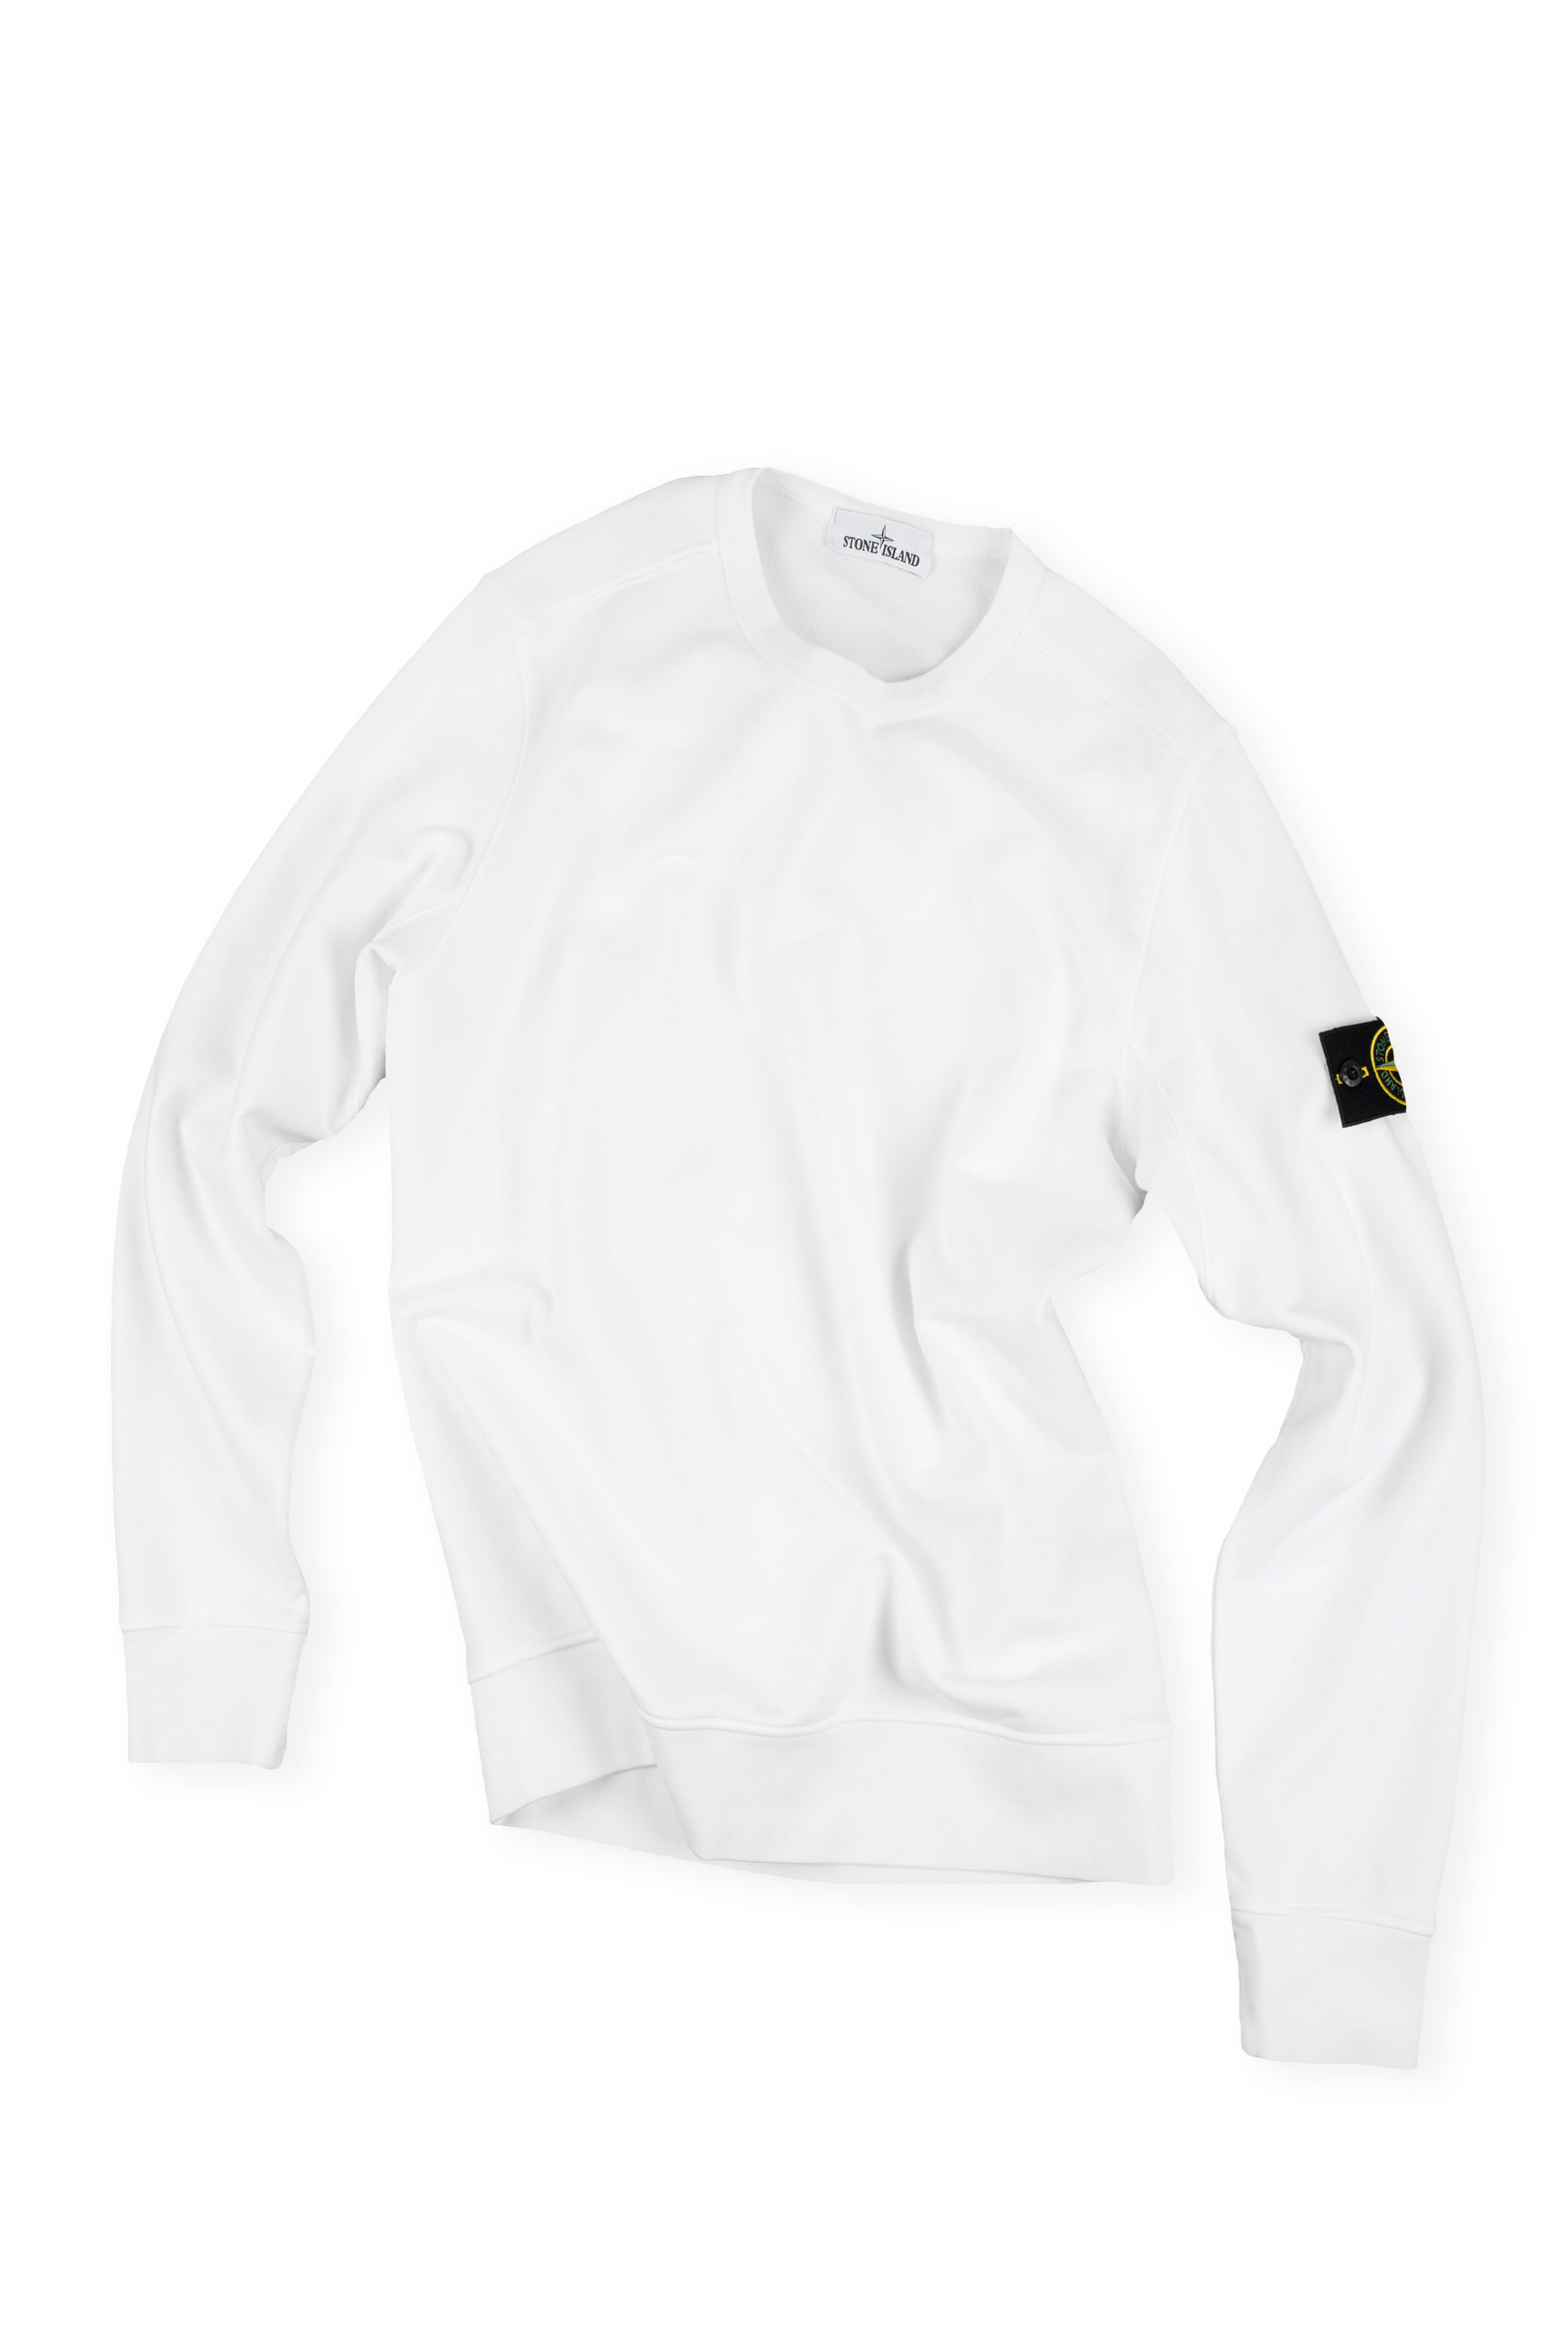 Stone Island : Man To Man (White)